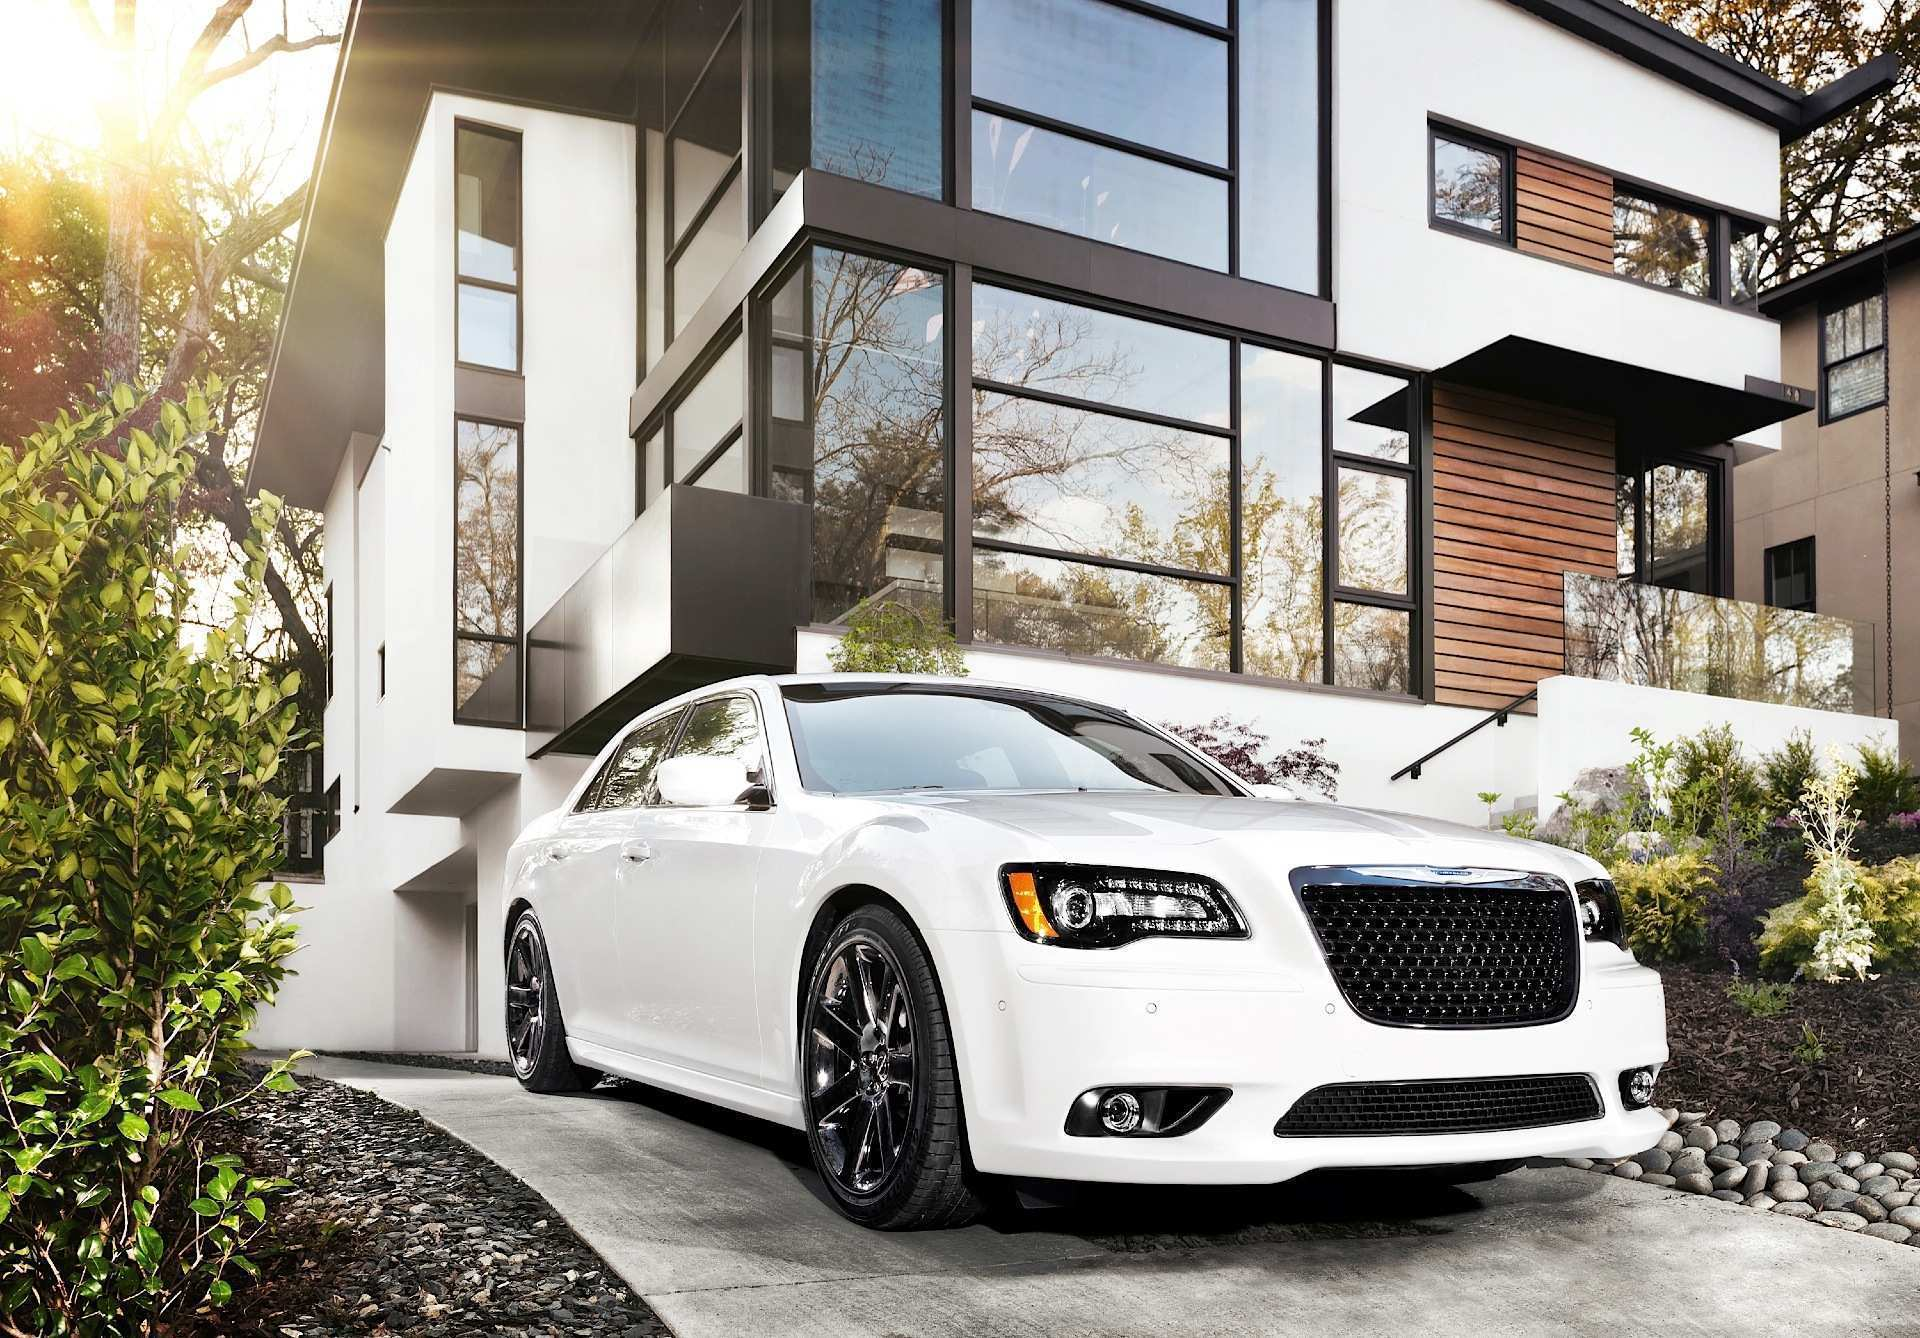 84 All New 2019 Chrysler 300 Srt 8 Pricing